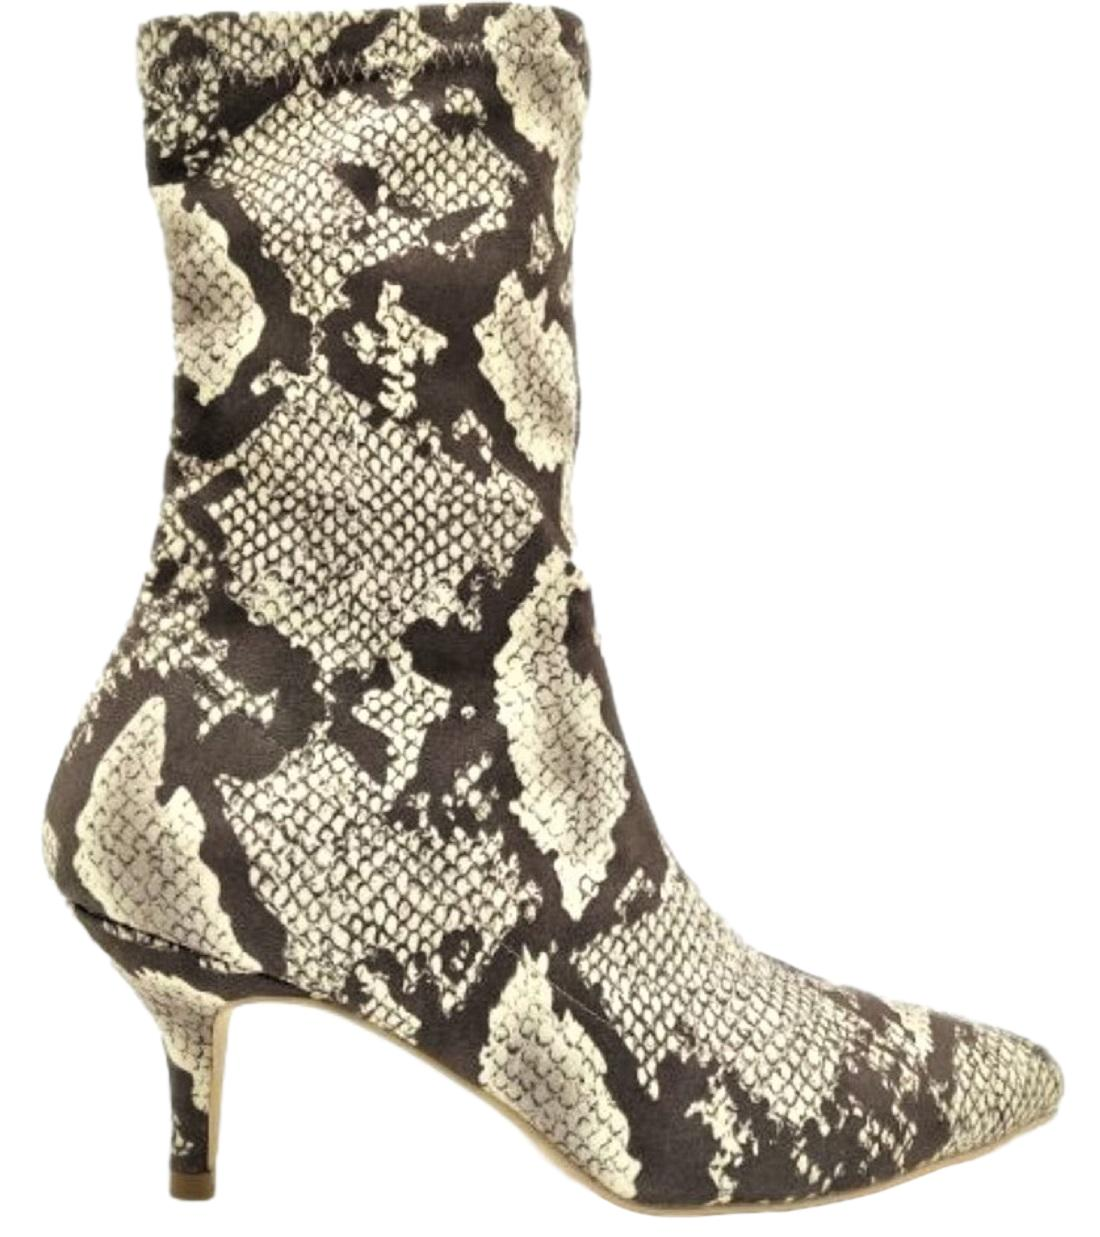 224-1 Elastic Stretchy Sock Ankle High Boots Booties Kitten Heel Pointed Toe Snake Print